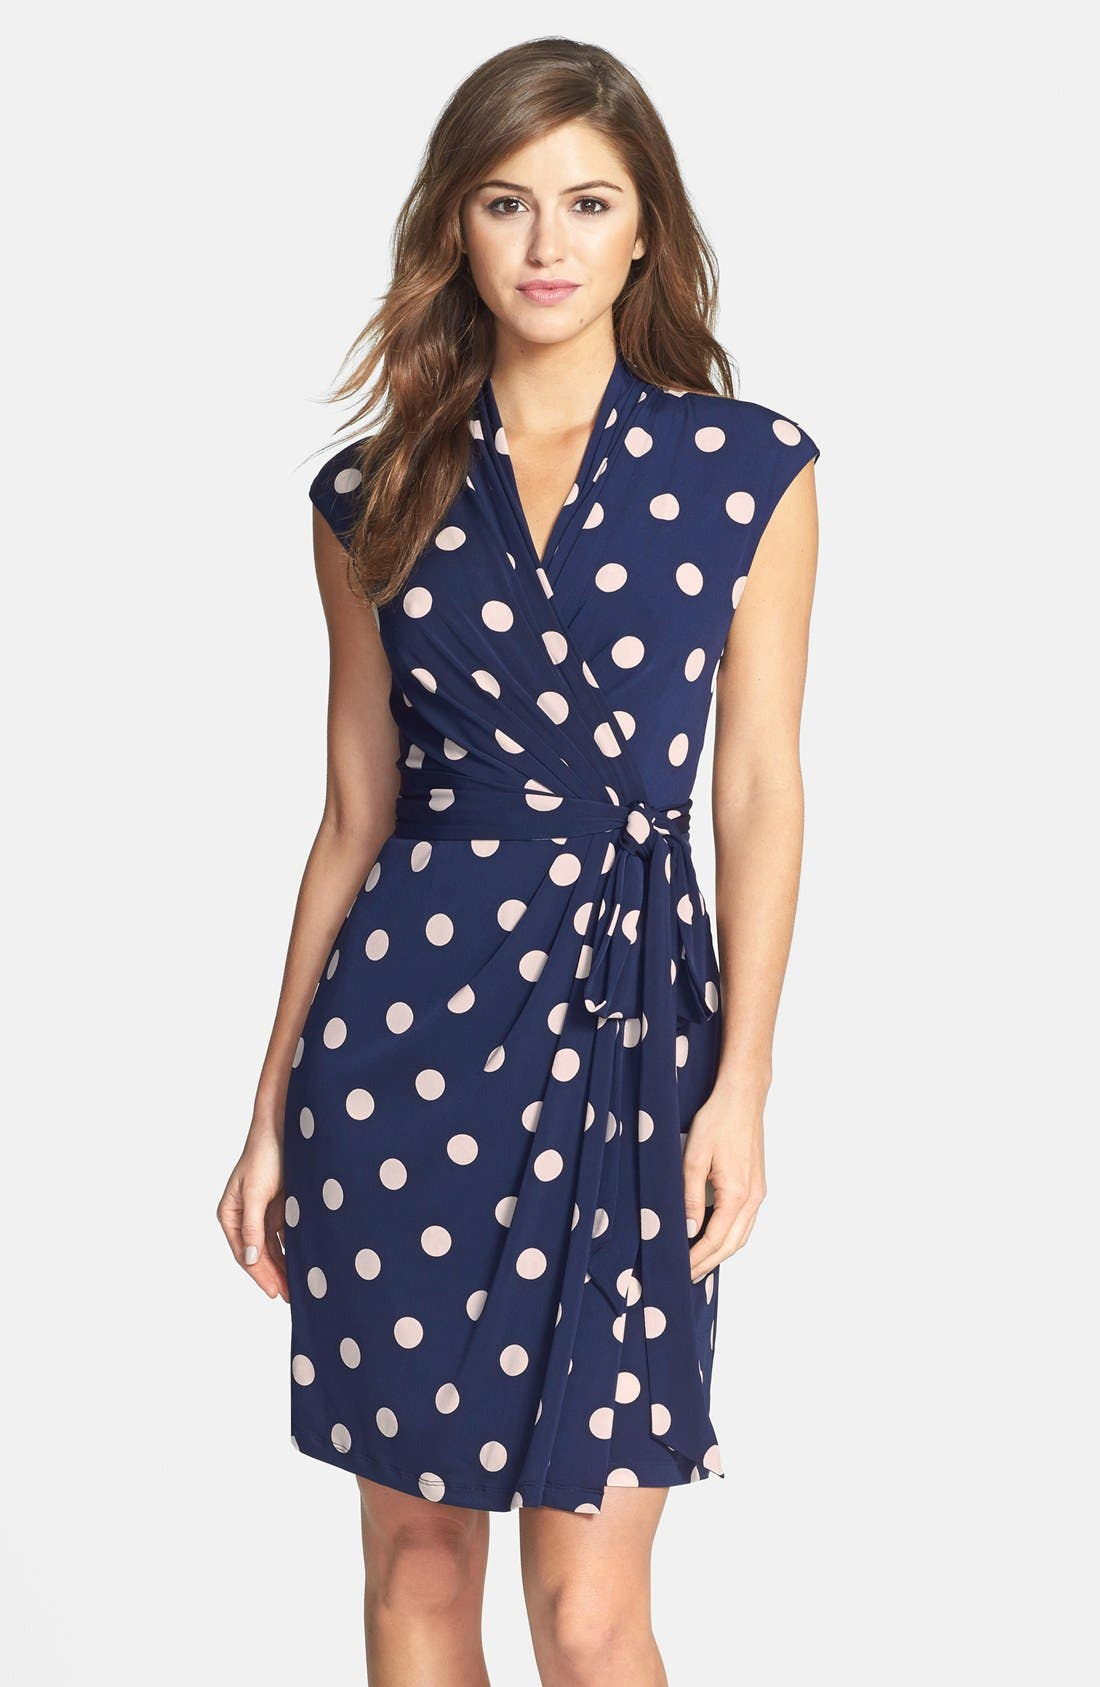 ELIZA J Polka Dot Jersey Faux Wrap Dress